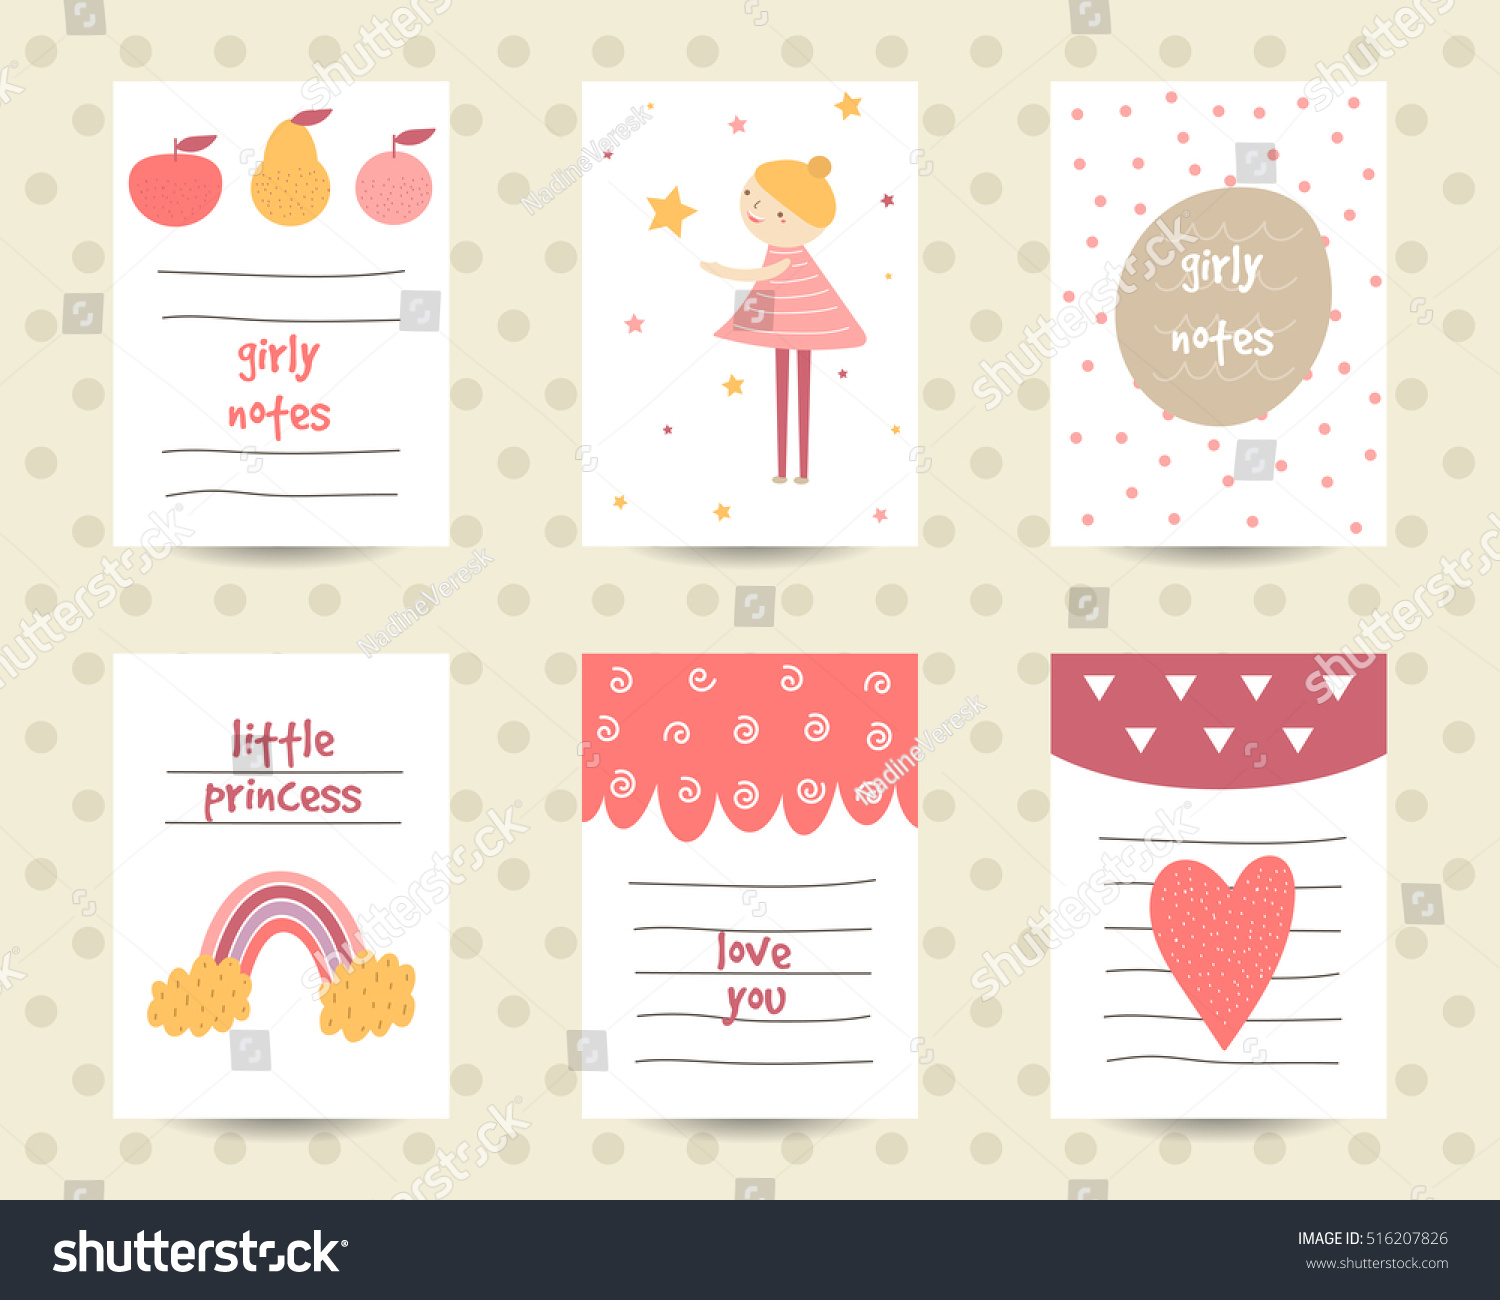 cute note pages do list flashcards stock vector royalty free